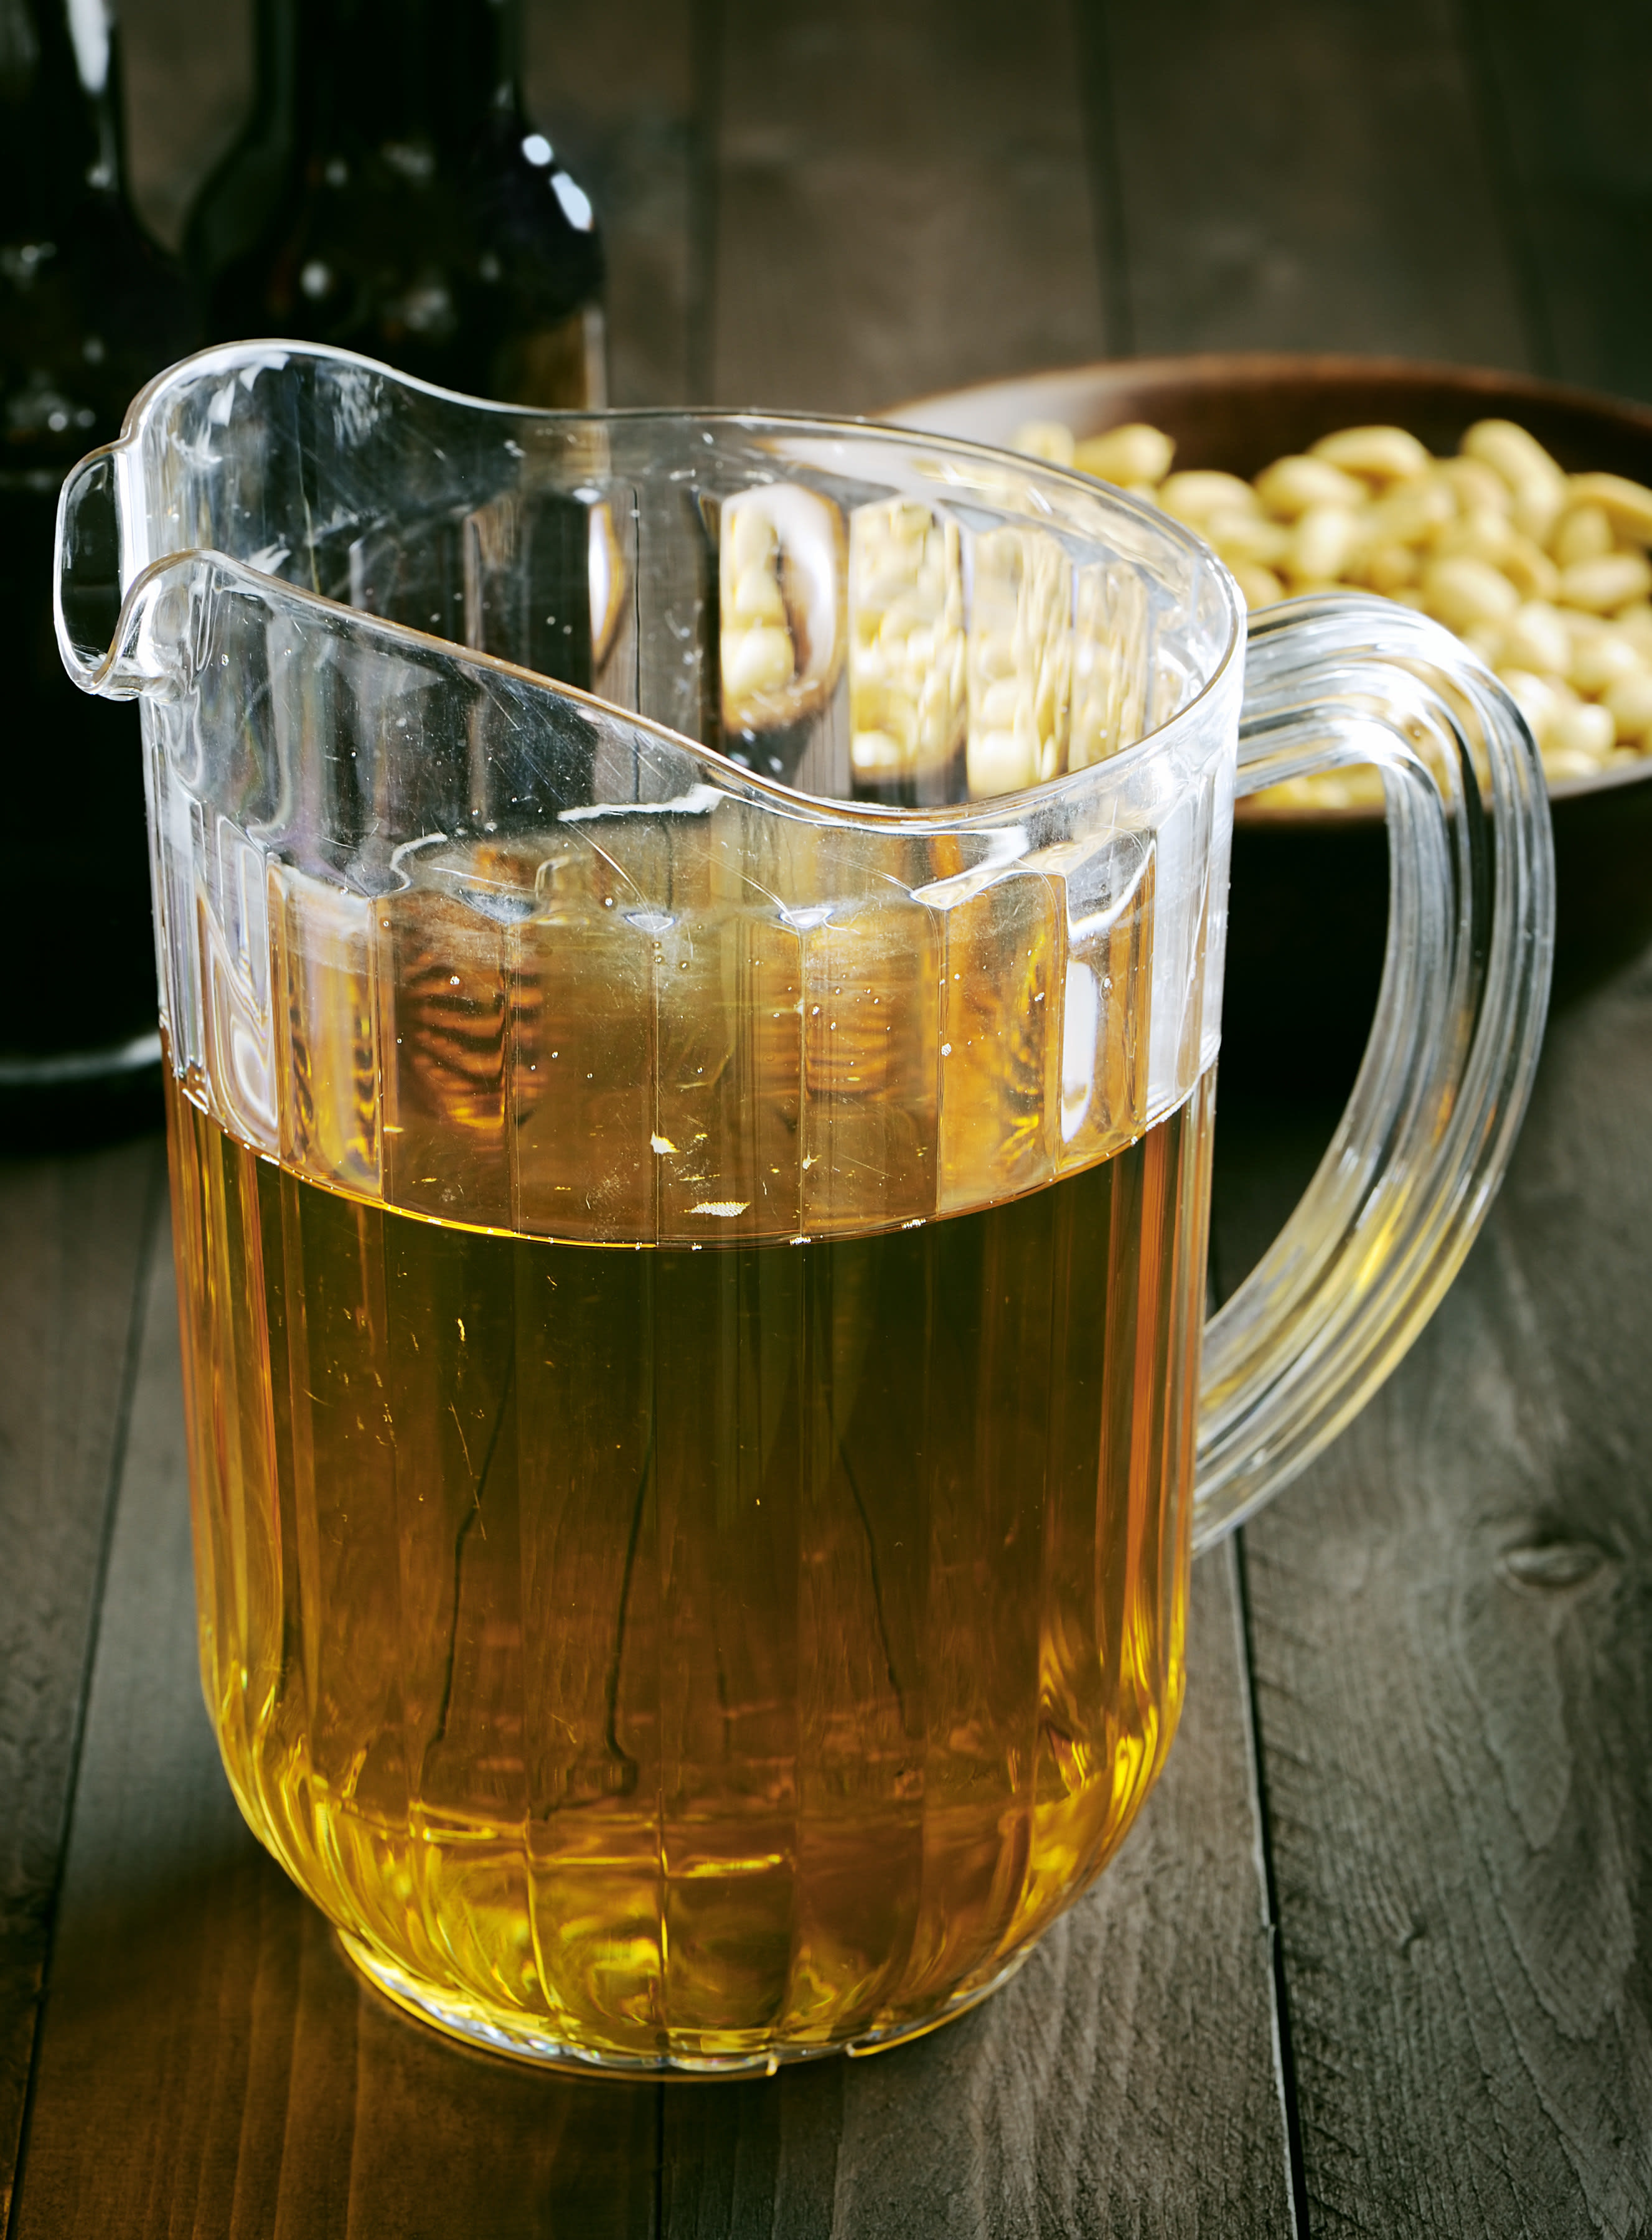 A stock image of a pitcher of beer